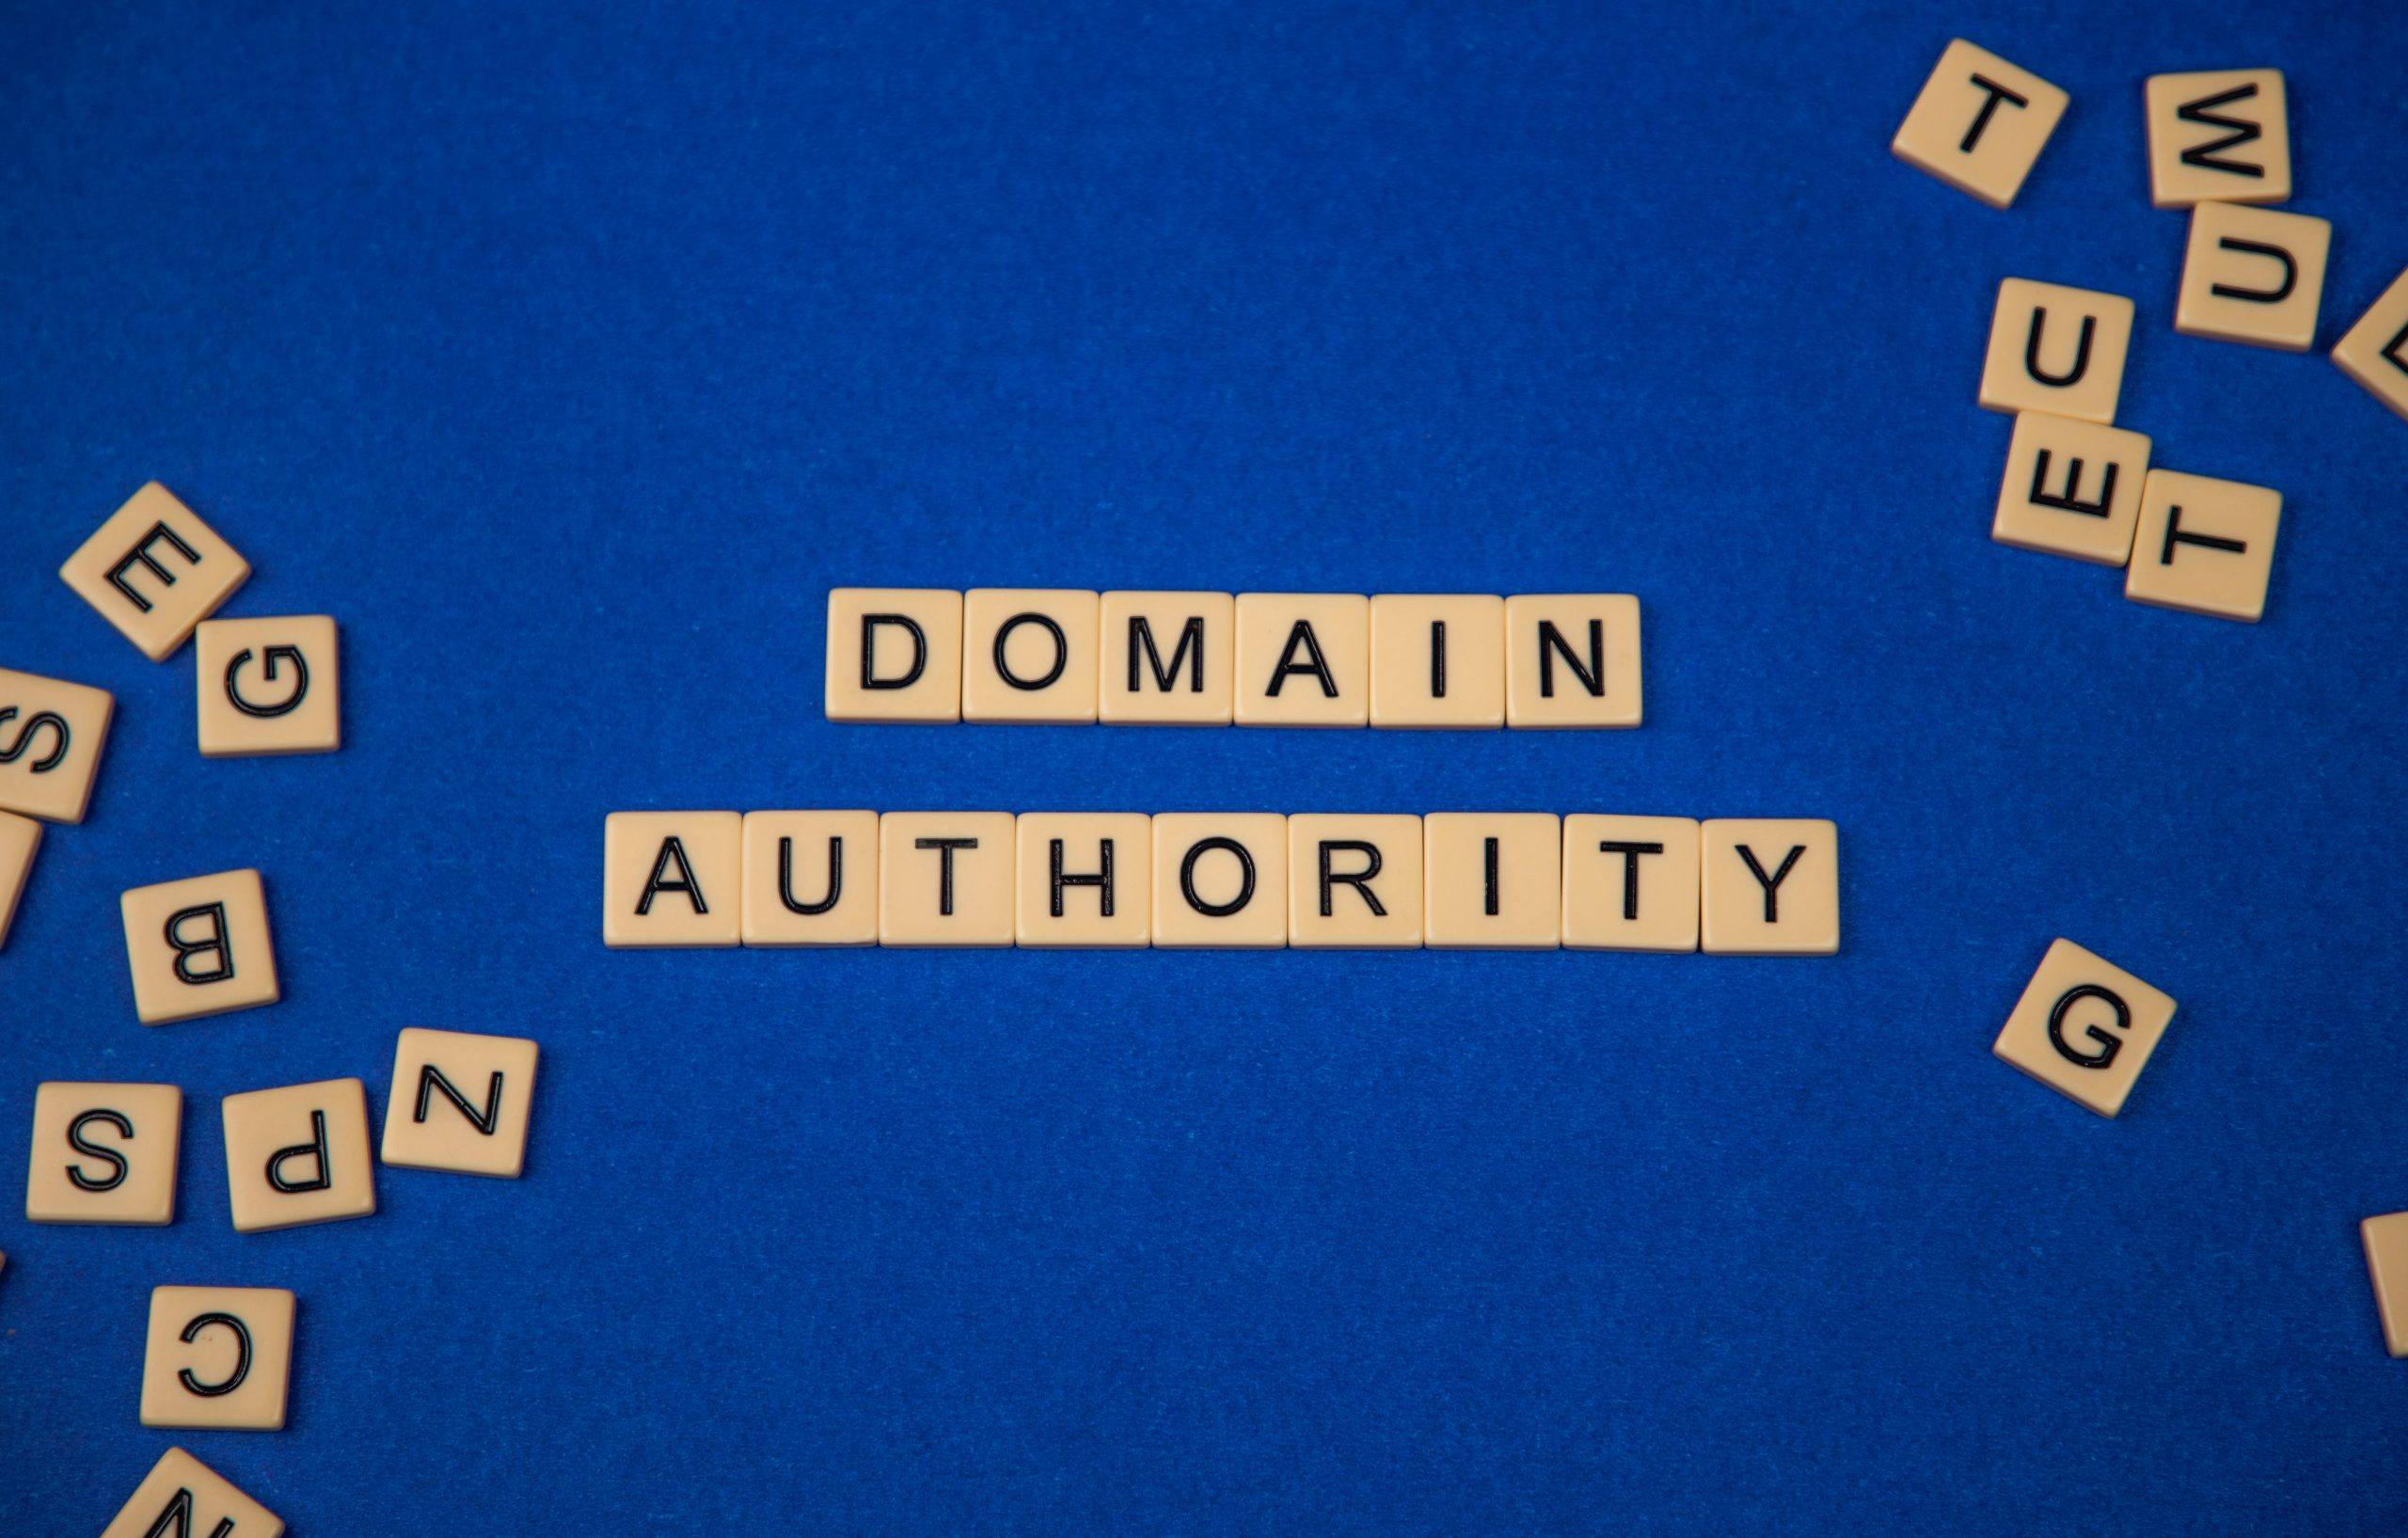 Domain authority written with scrabble